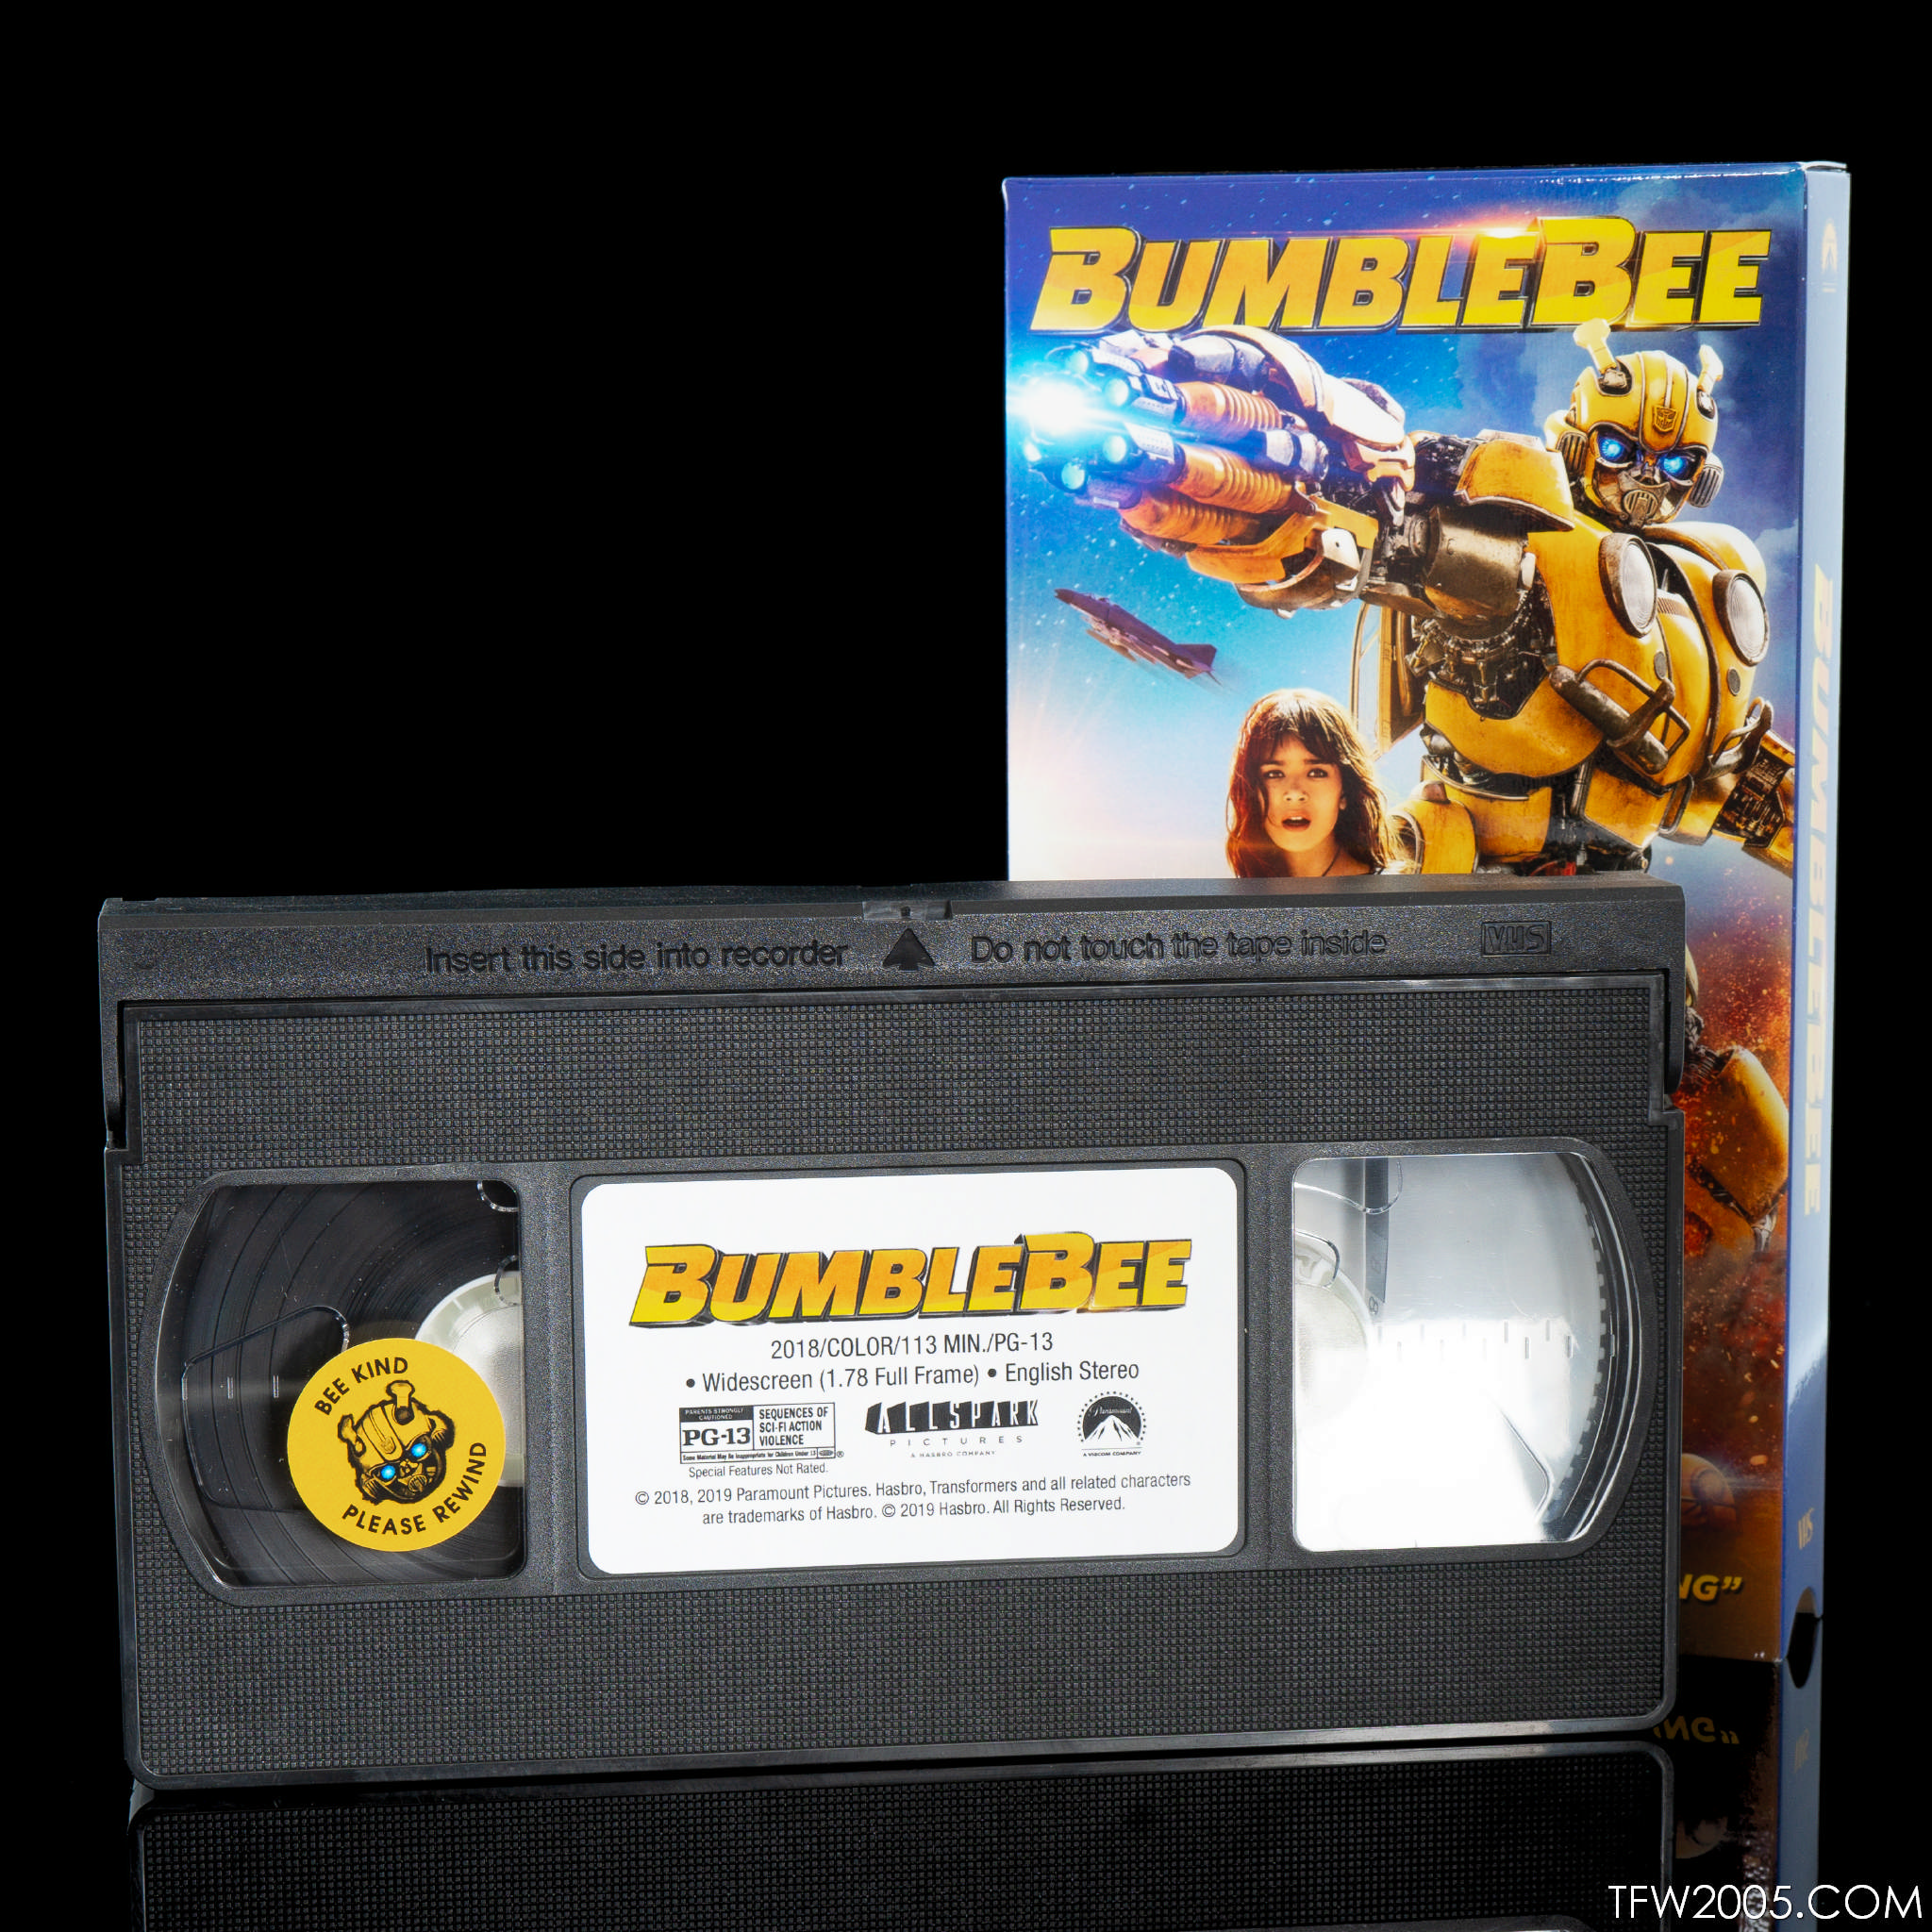 Transformers: Bumblebee Movie Out Now on VHS (Real VHS